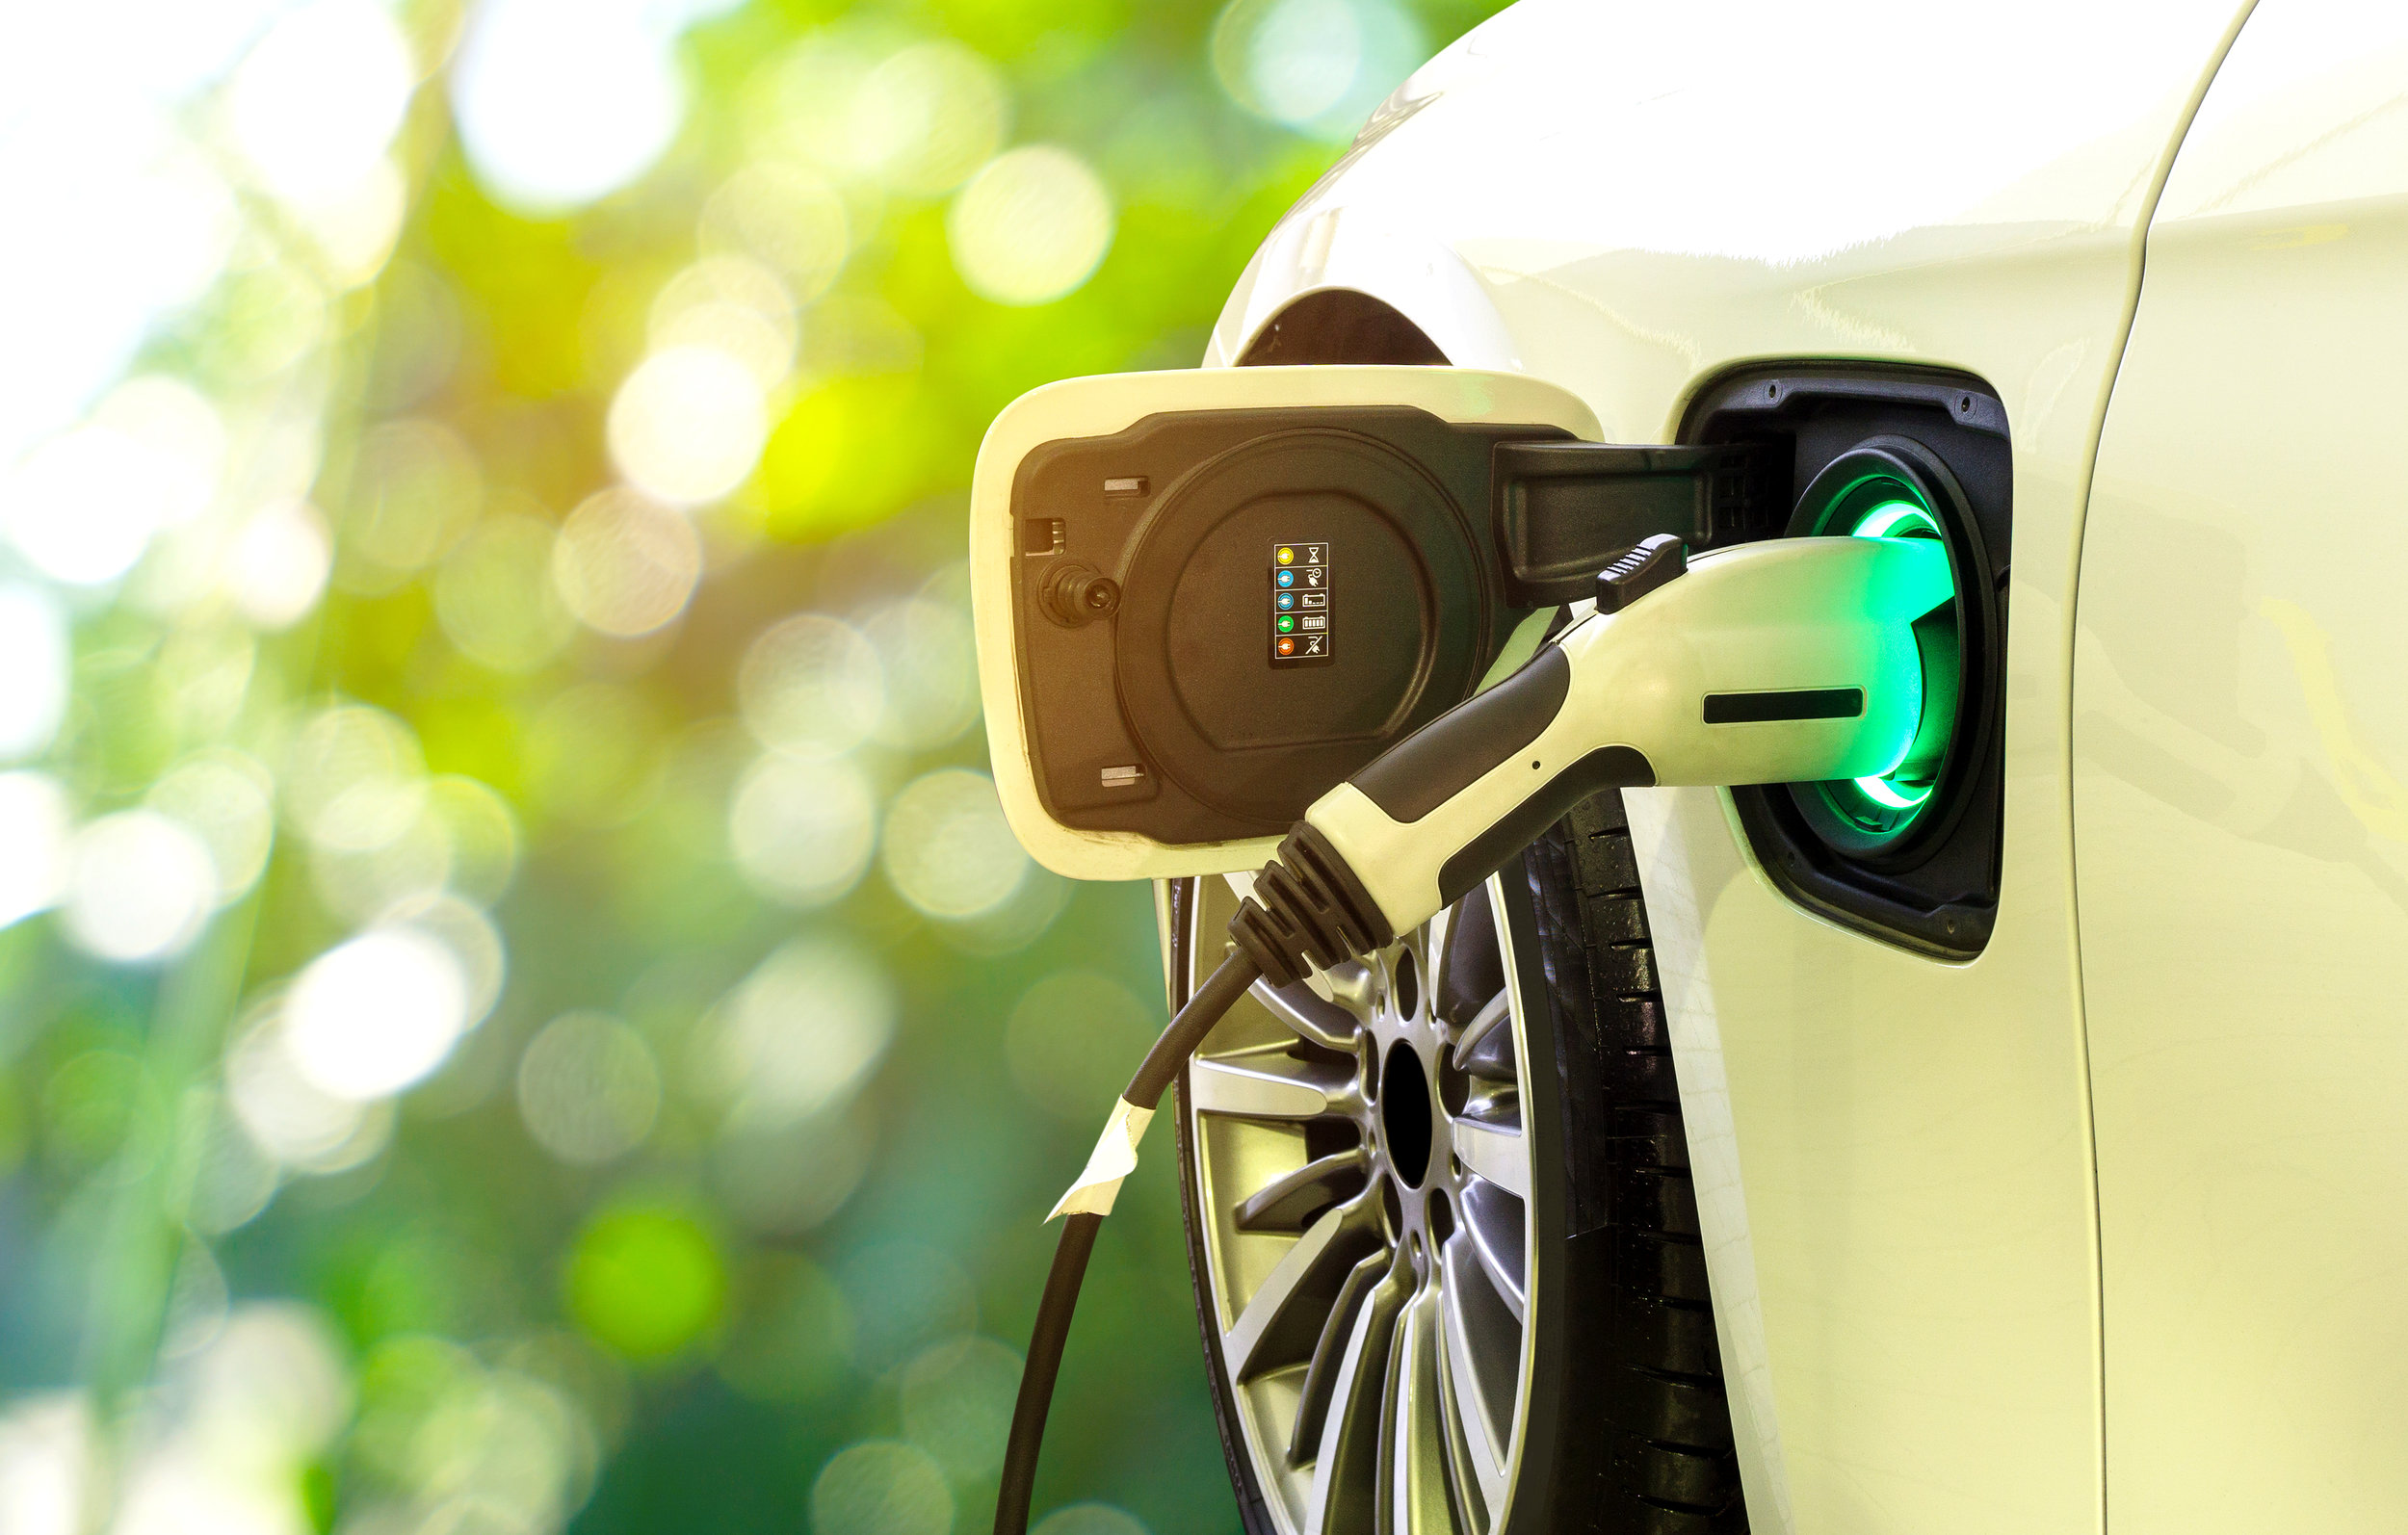 Pro's and Con's of an Electric Vehicle | Wireworks Electrical Services Ltd. Sherwood Park AB